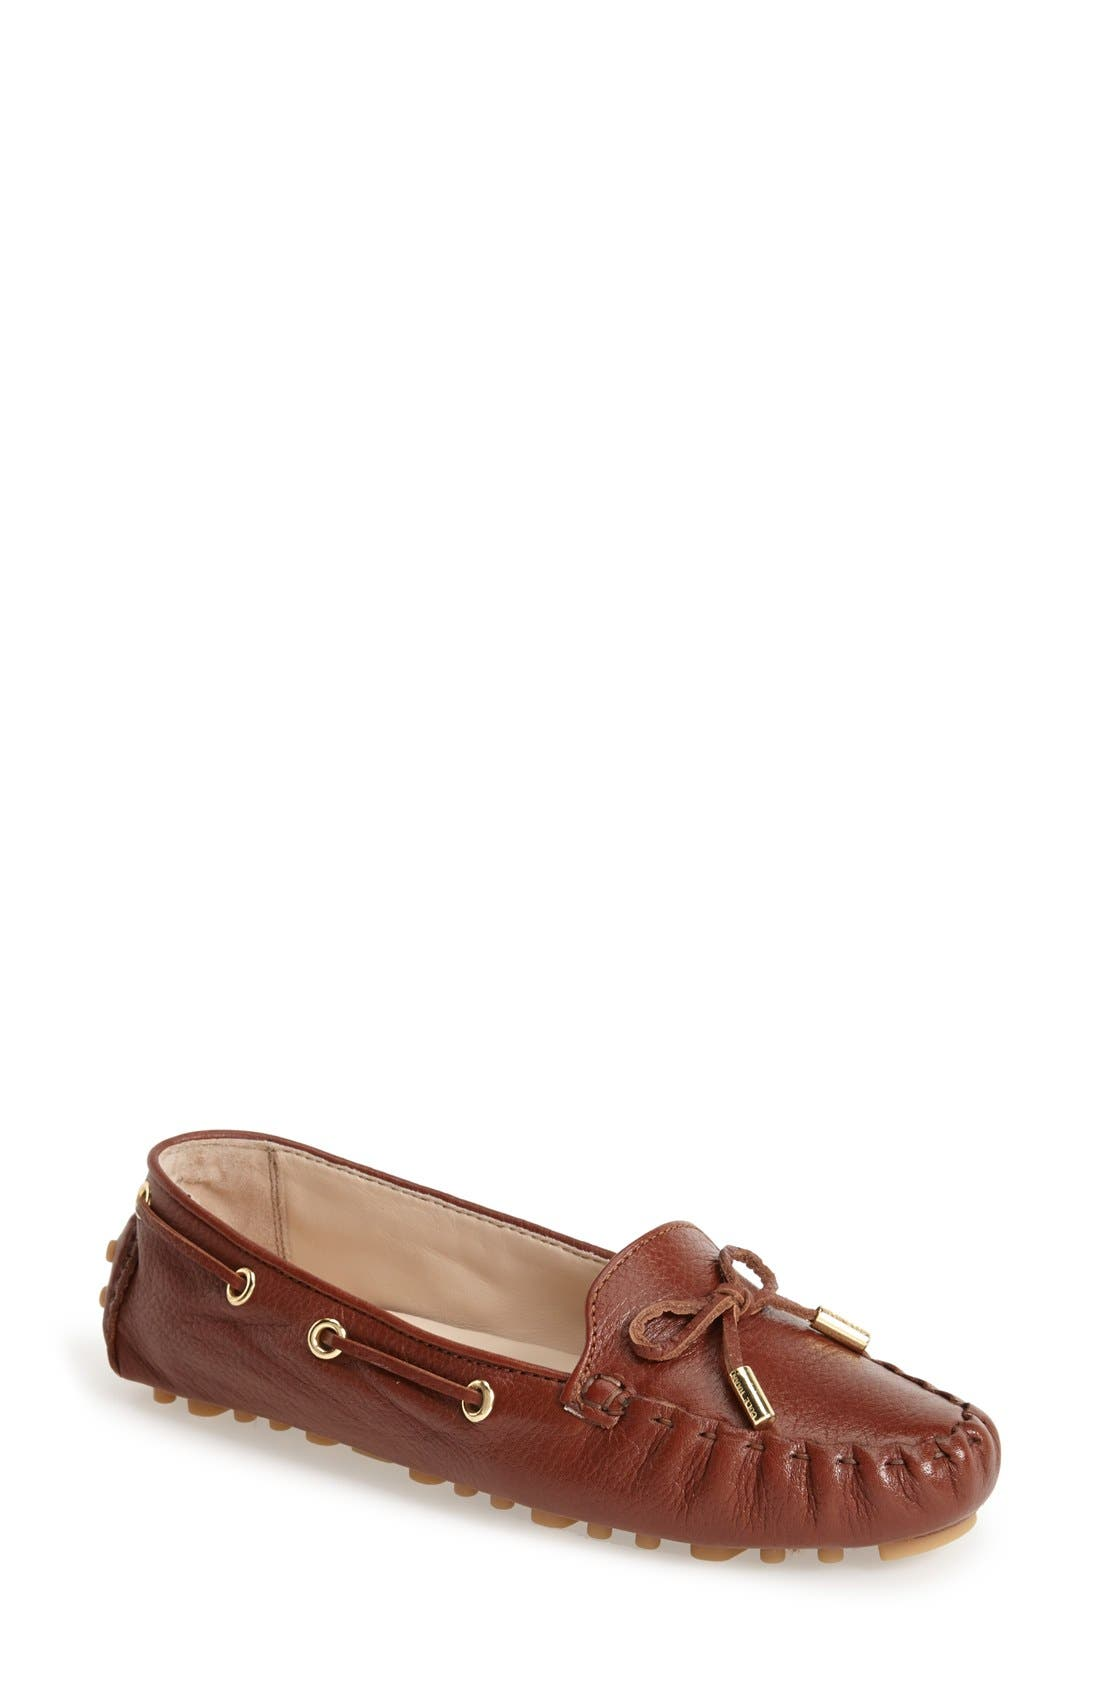 'Cary' Leather Driving Flat,                         Main,                         color, Woodbury